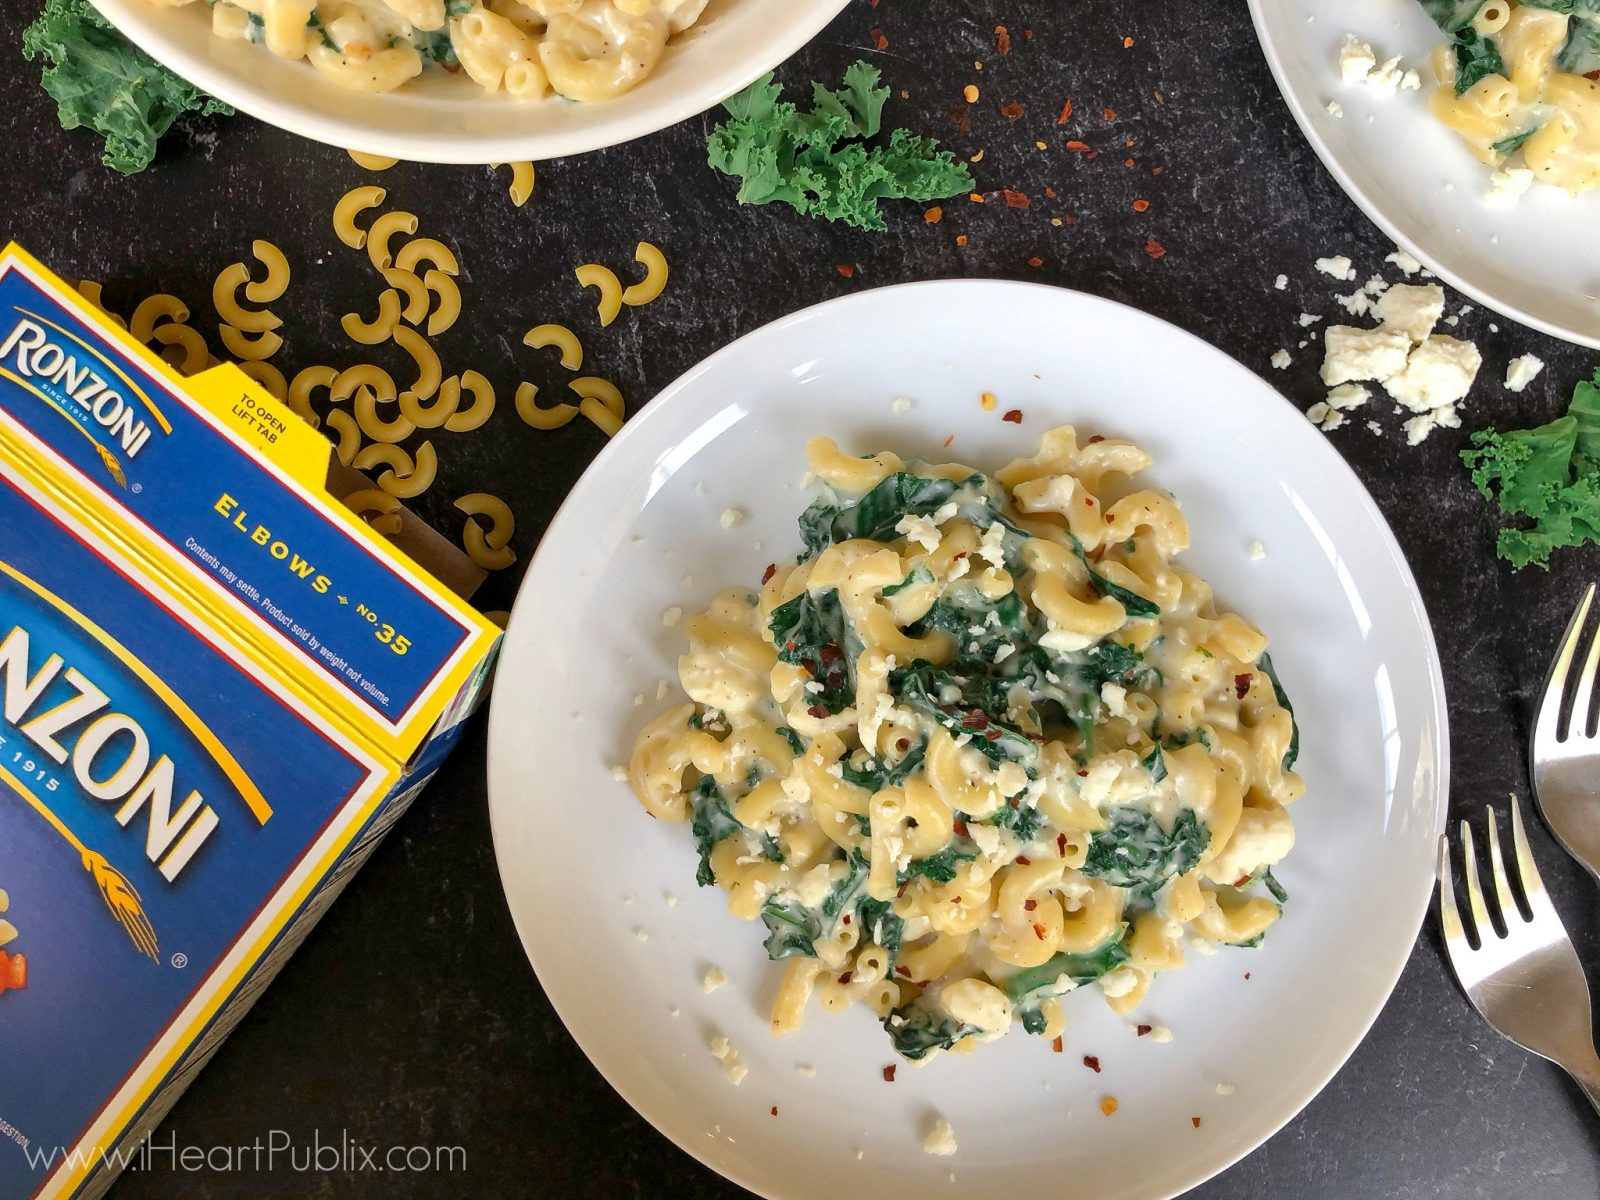 Ronzoni Pasta Is BOGO At Publix - Great Time To Make This Lemon and Rosemary Mac and Cheese on I Heart Publix 3